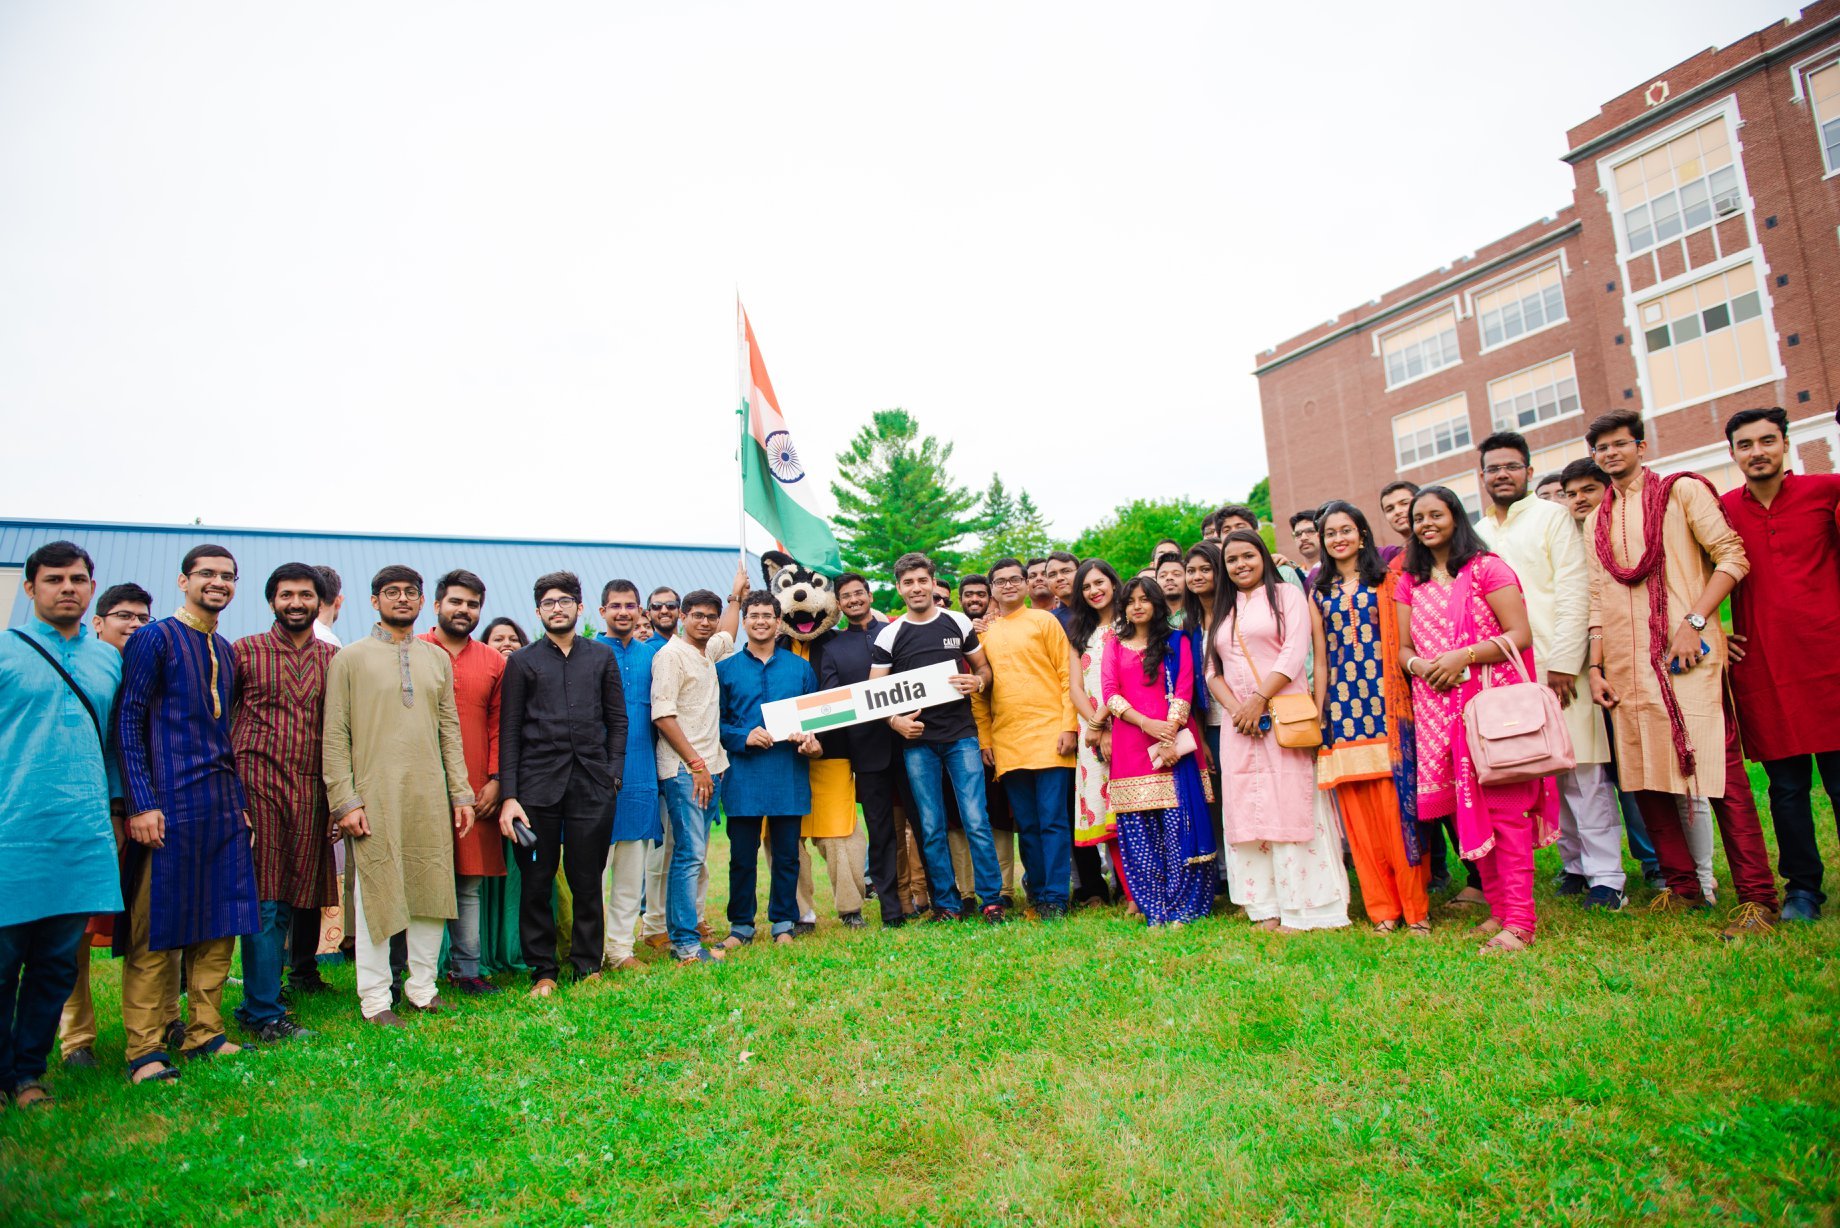 Indian Student Organization